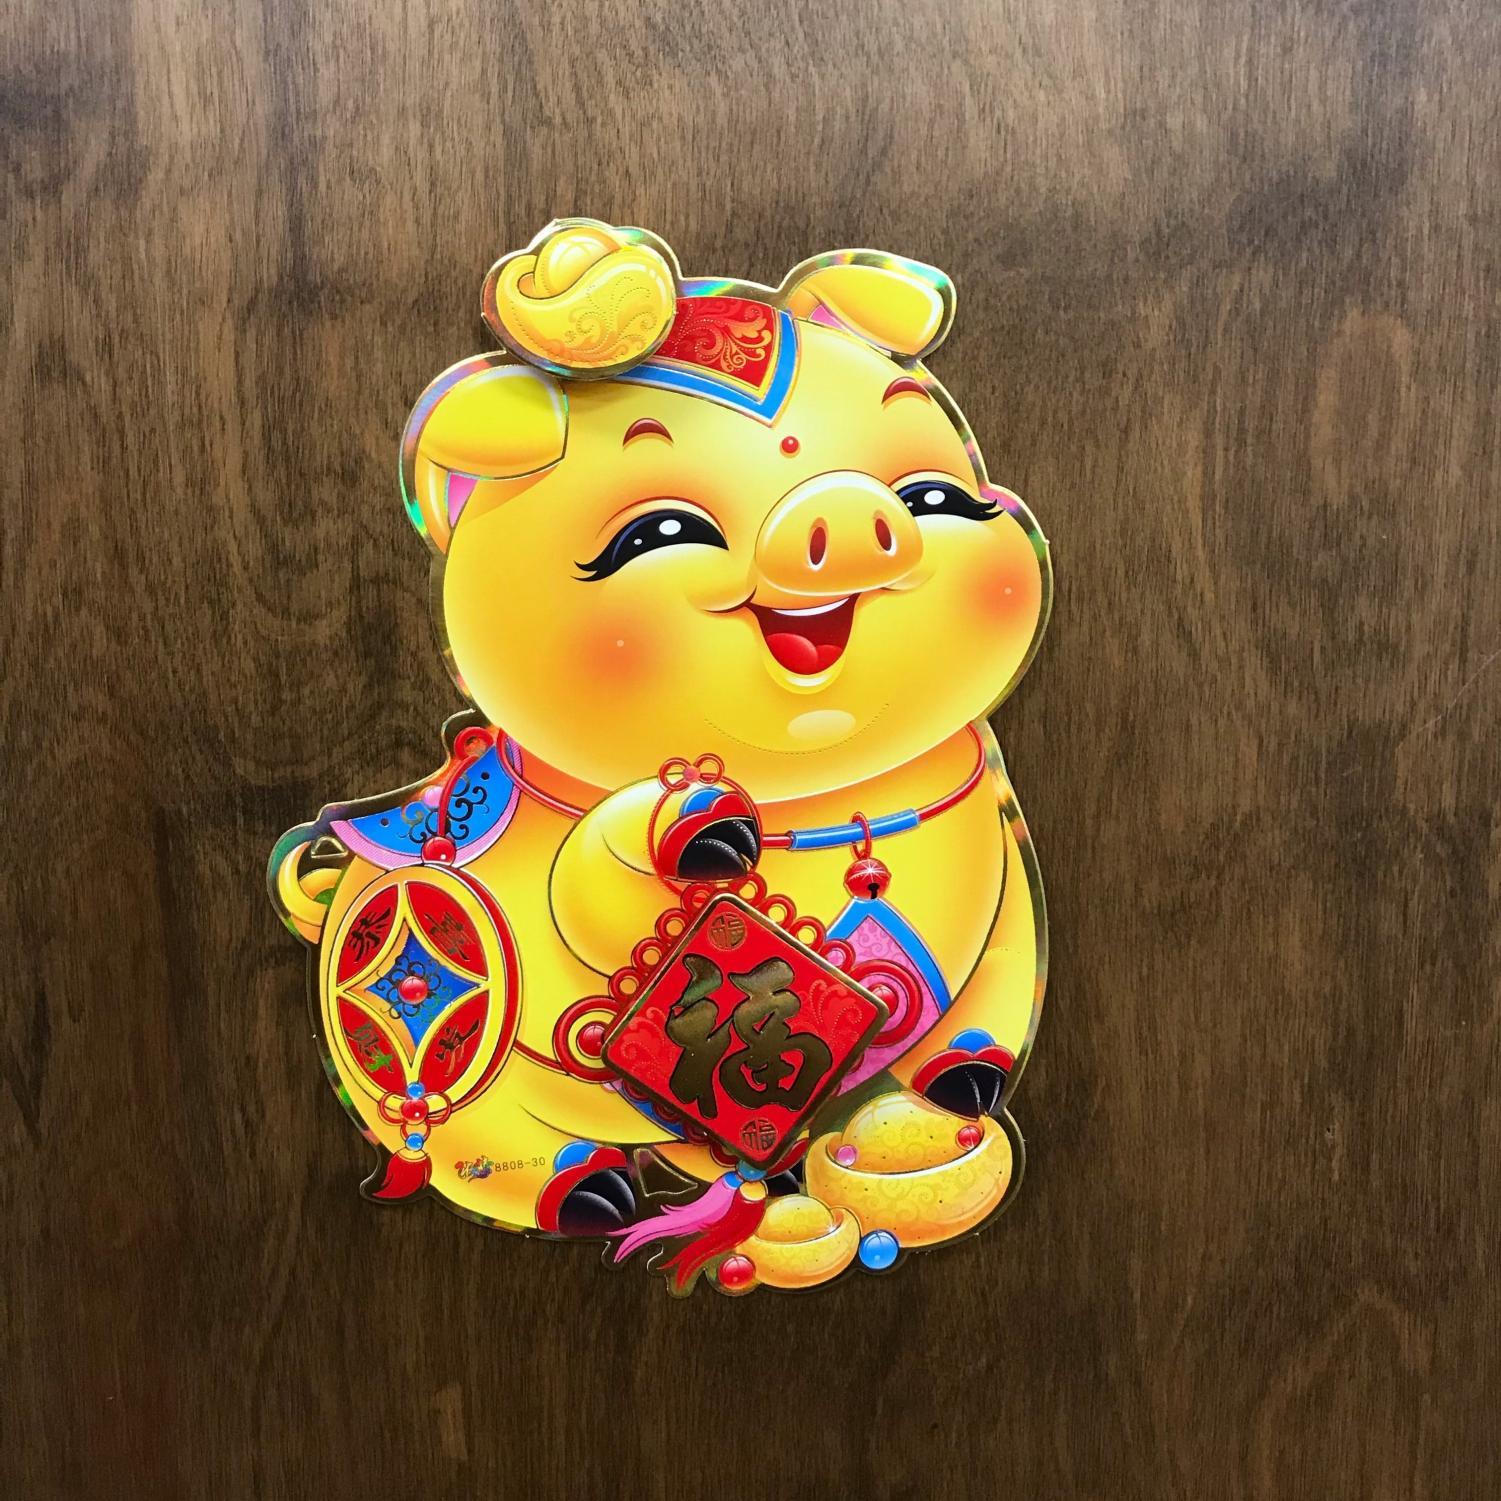 In Chinese culture, the pig is a symbol of wealth and good fortune. The pig is the twelfth of the zodiac animals. The traits of the zodiac animal are bestowed on the people born during that year.